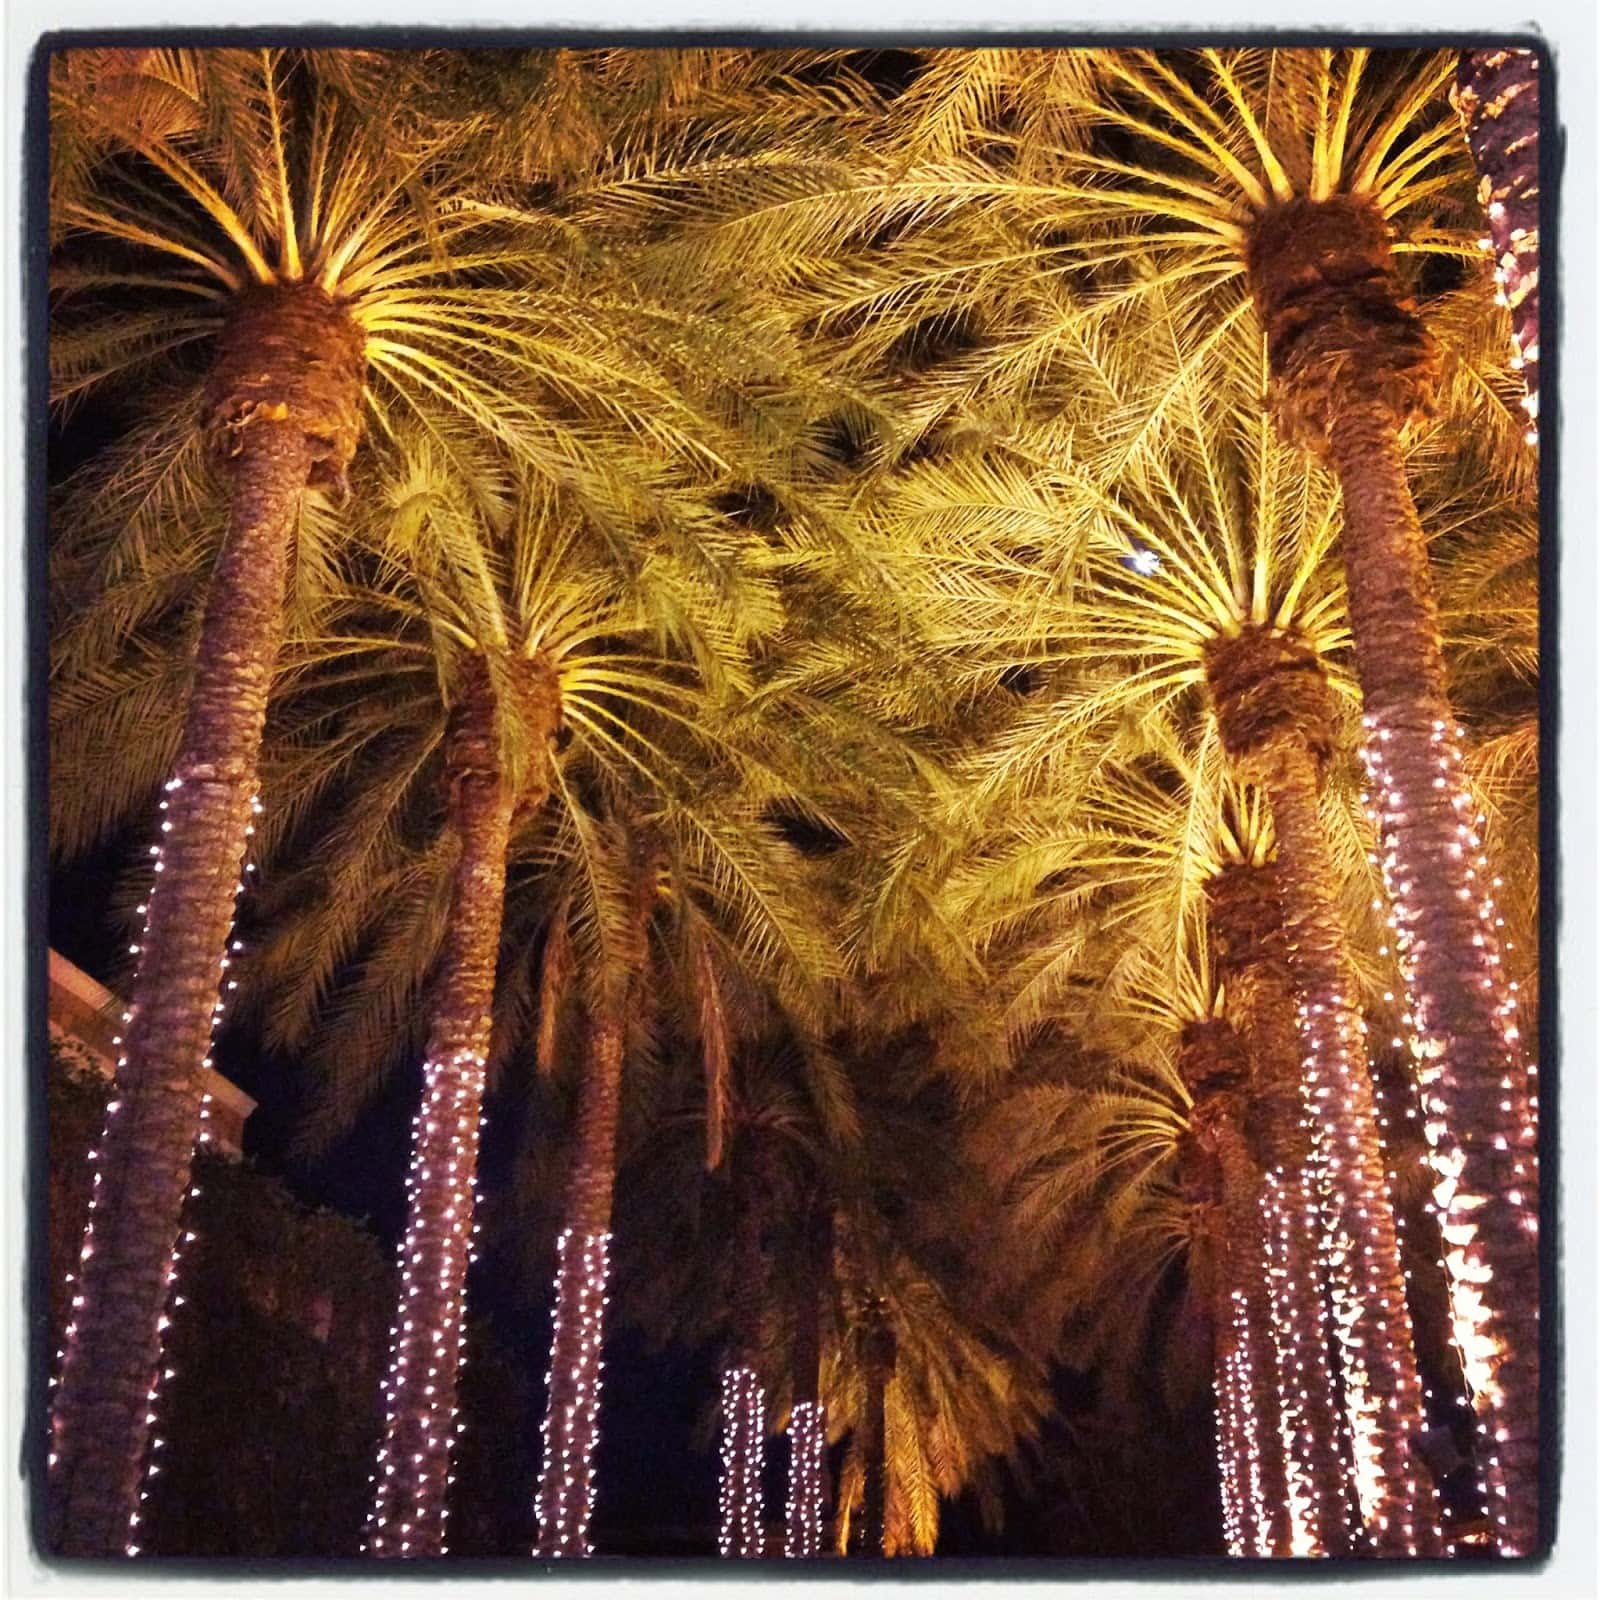 Palm trees with lights on them all in a row.